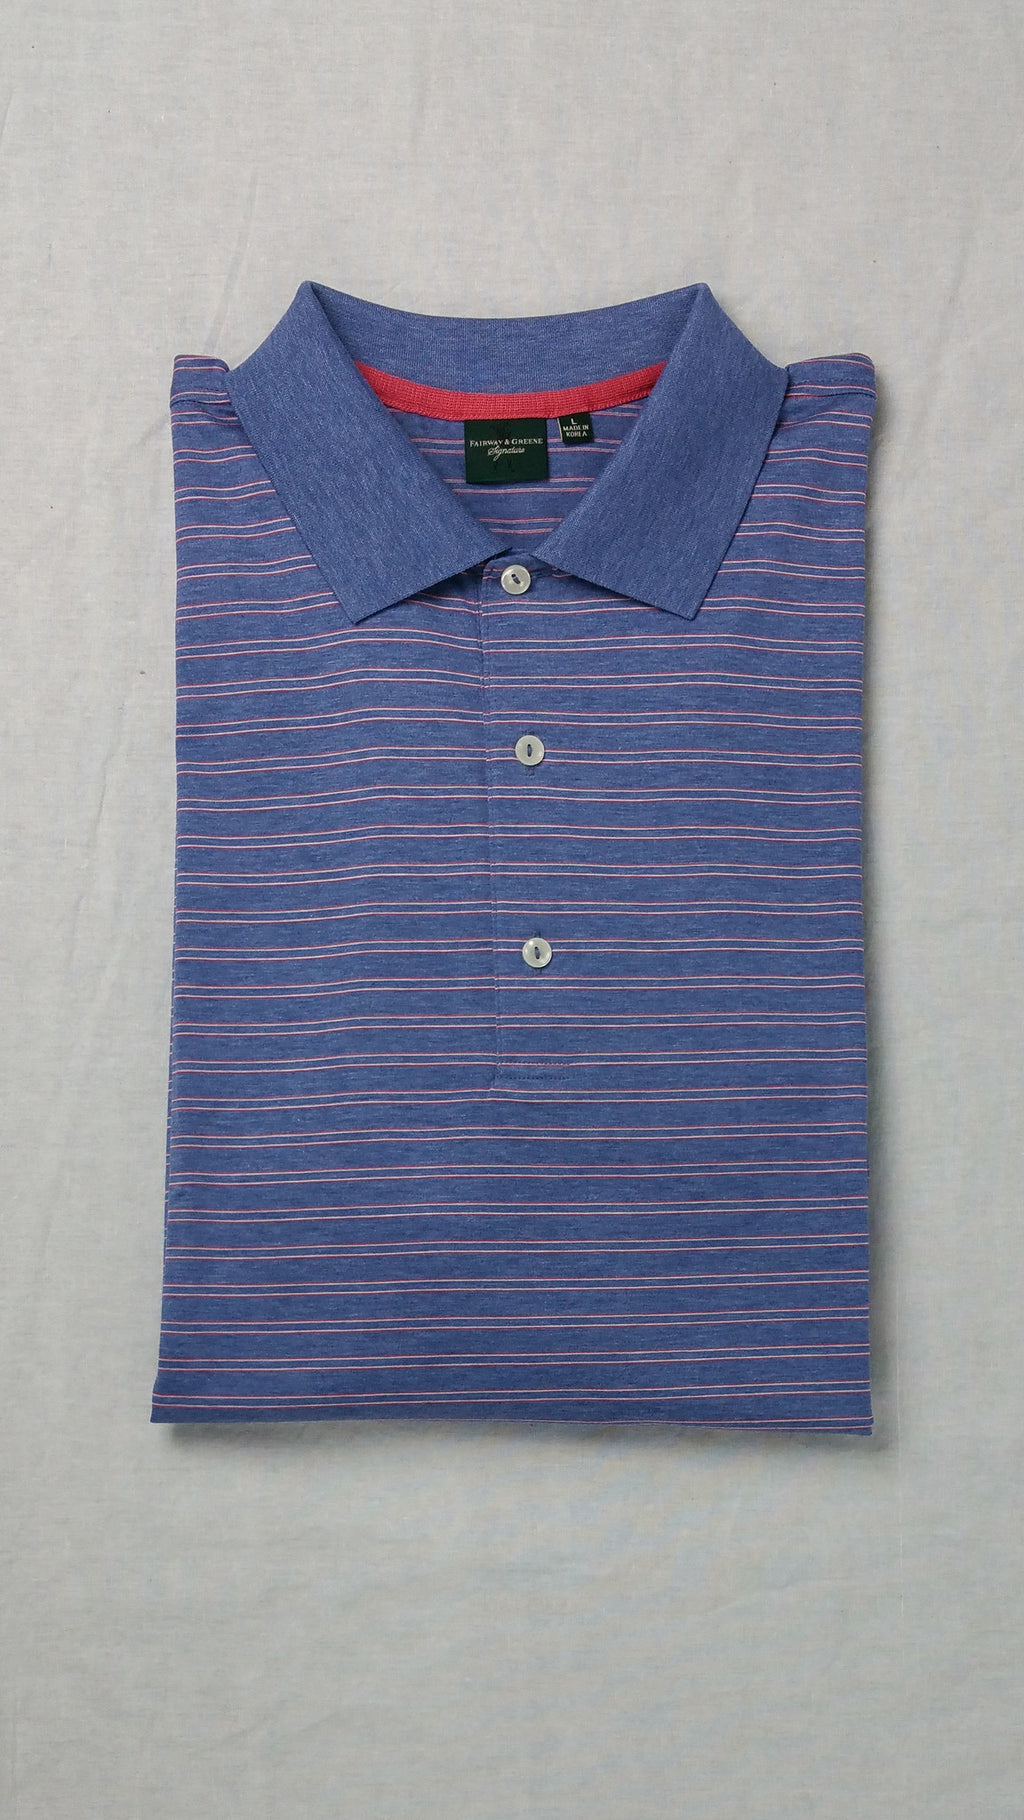 Fairway and Greene Blue Striped Polo